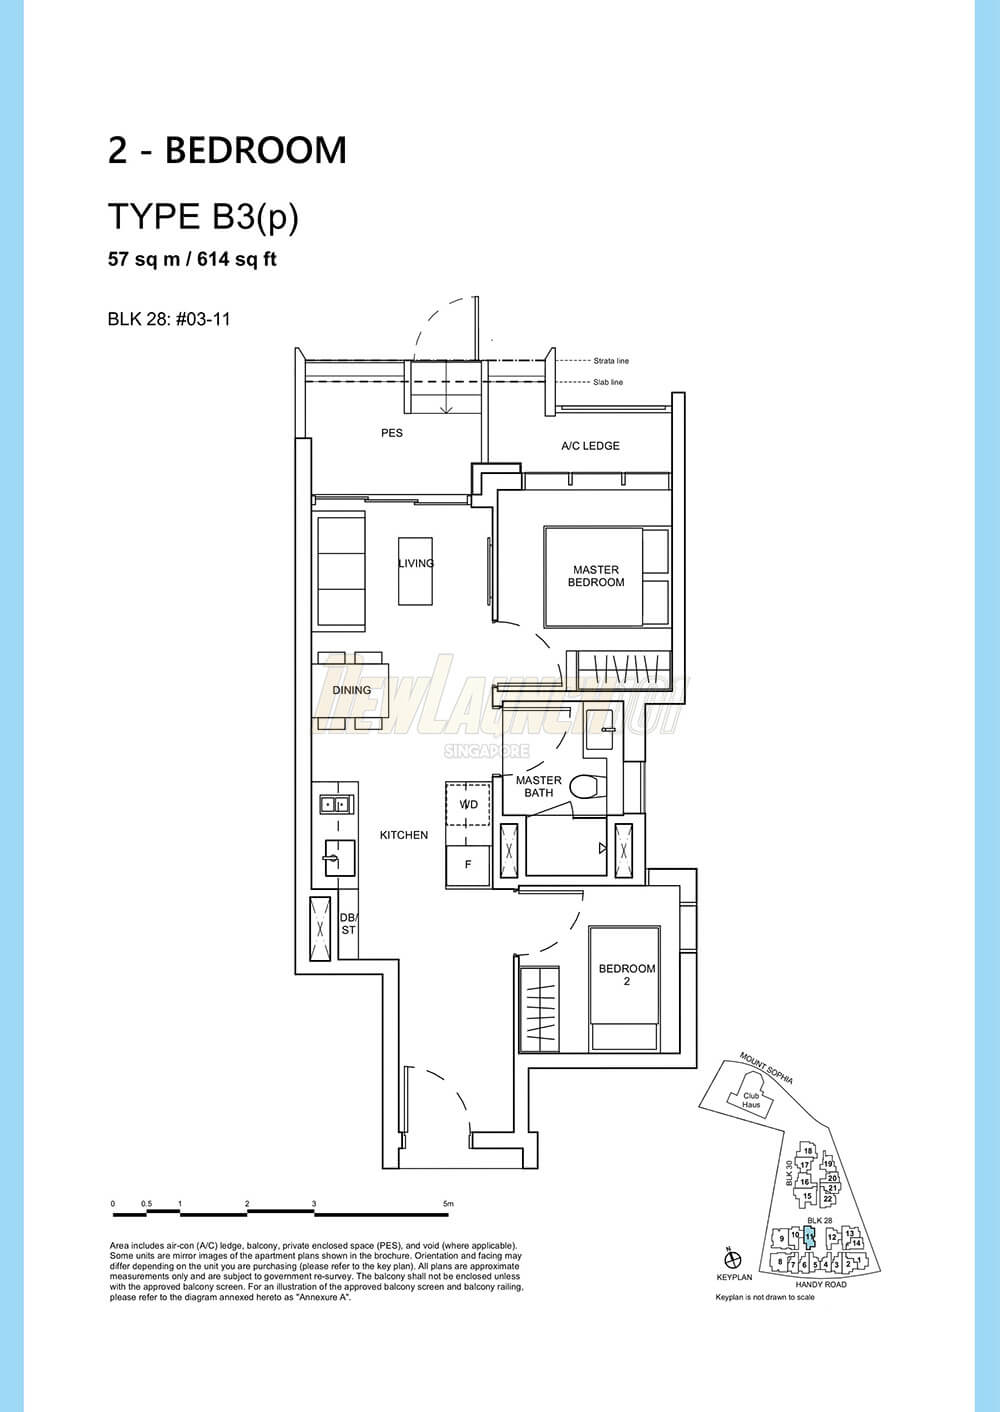 Haus on Handy Floor Plan 2-Bedroom Type B3p